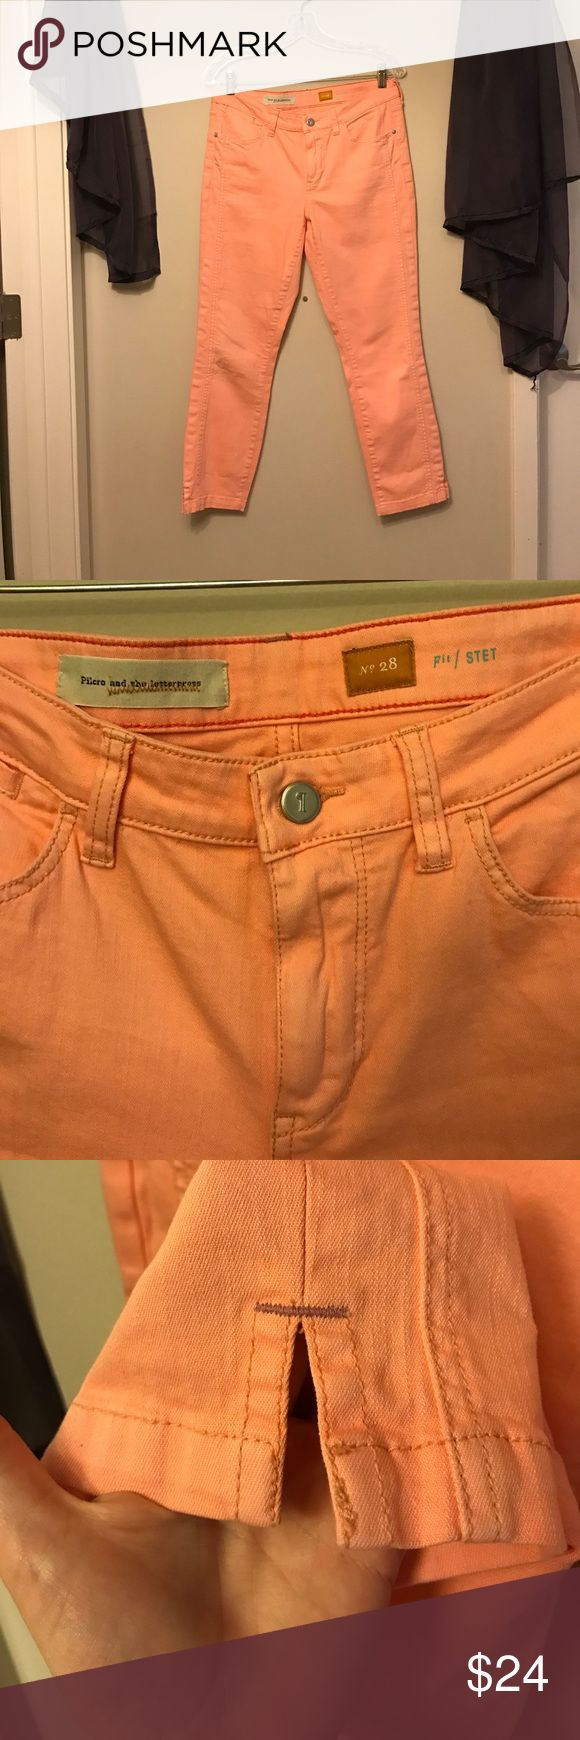 Bright Coral Jeans by Pilcro & the Letterpress These jeans are in excellent used conditions. They are a bright light neon coral color. Like a vibrant salmon coral pink. They are by Pilcro and the Letterpress which is sold at Anthropologie. These are the Stet fit. Anthropologie Jeans